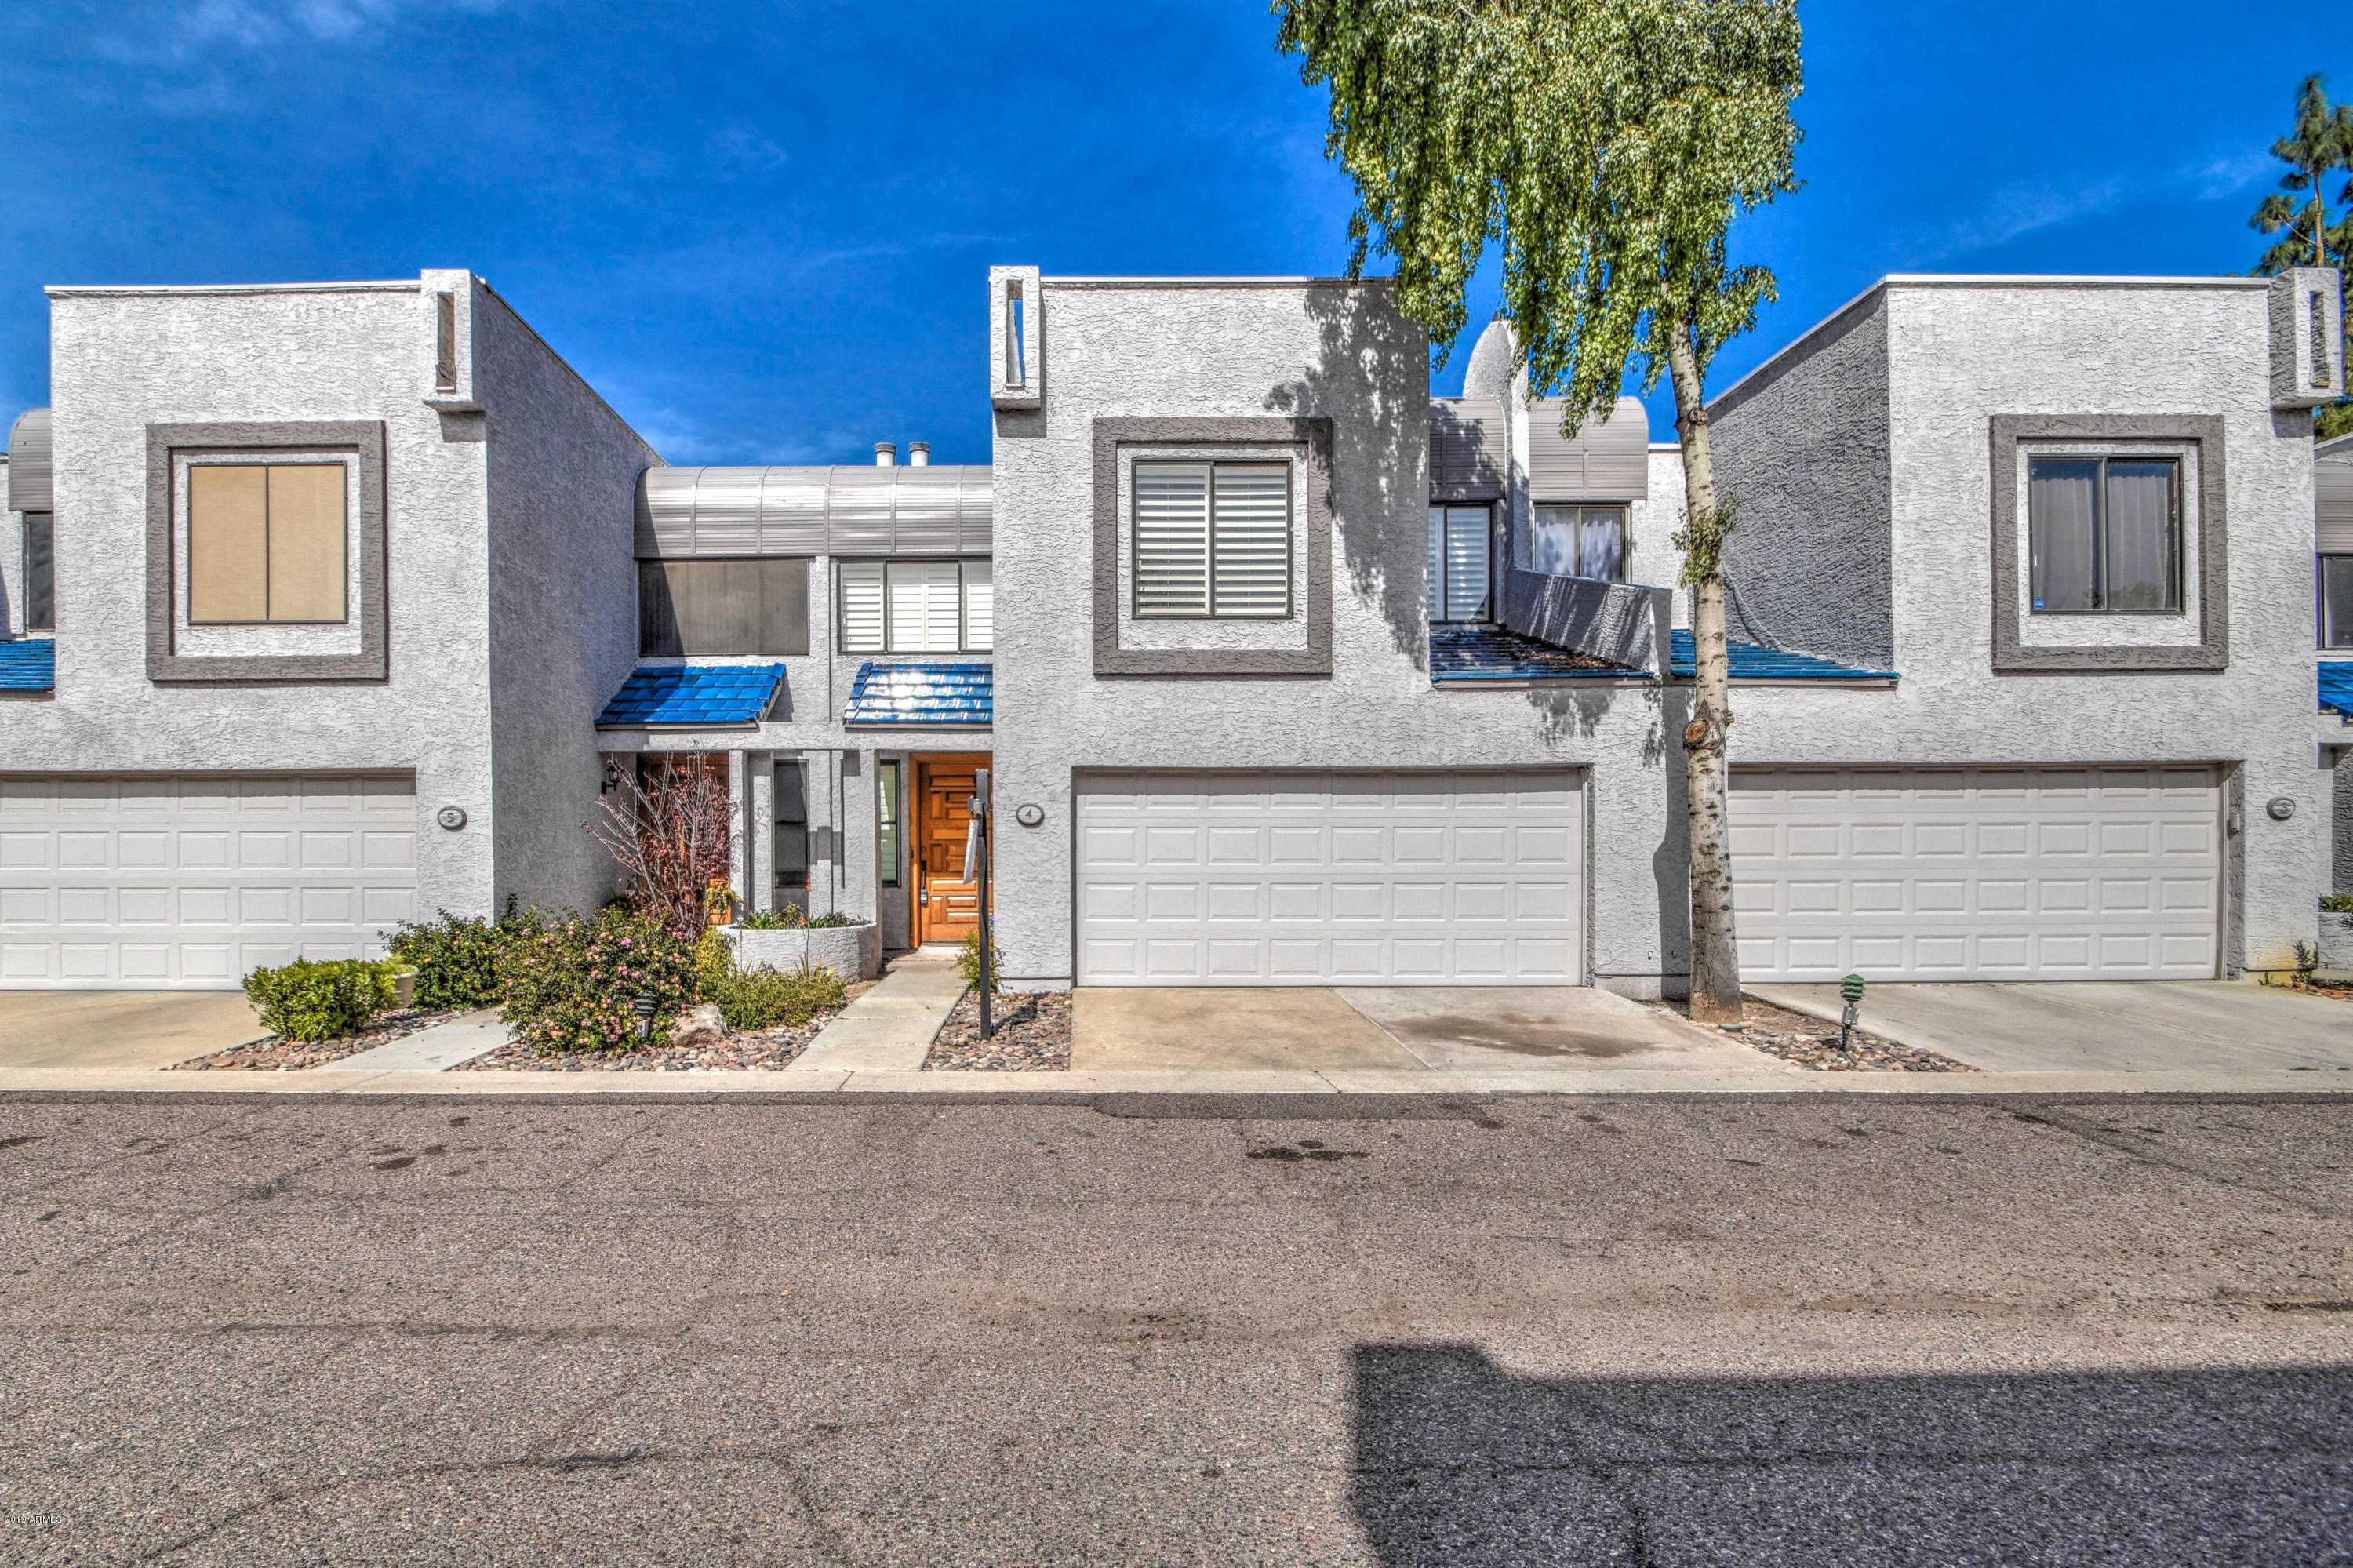 Photo of 5750 N 10TH Street #4, Phoenix, AZ 85014